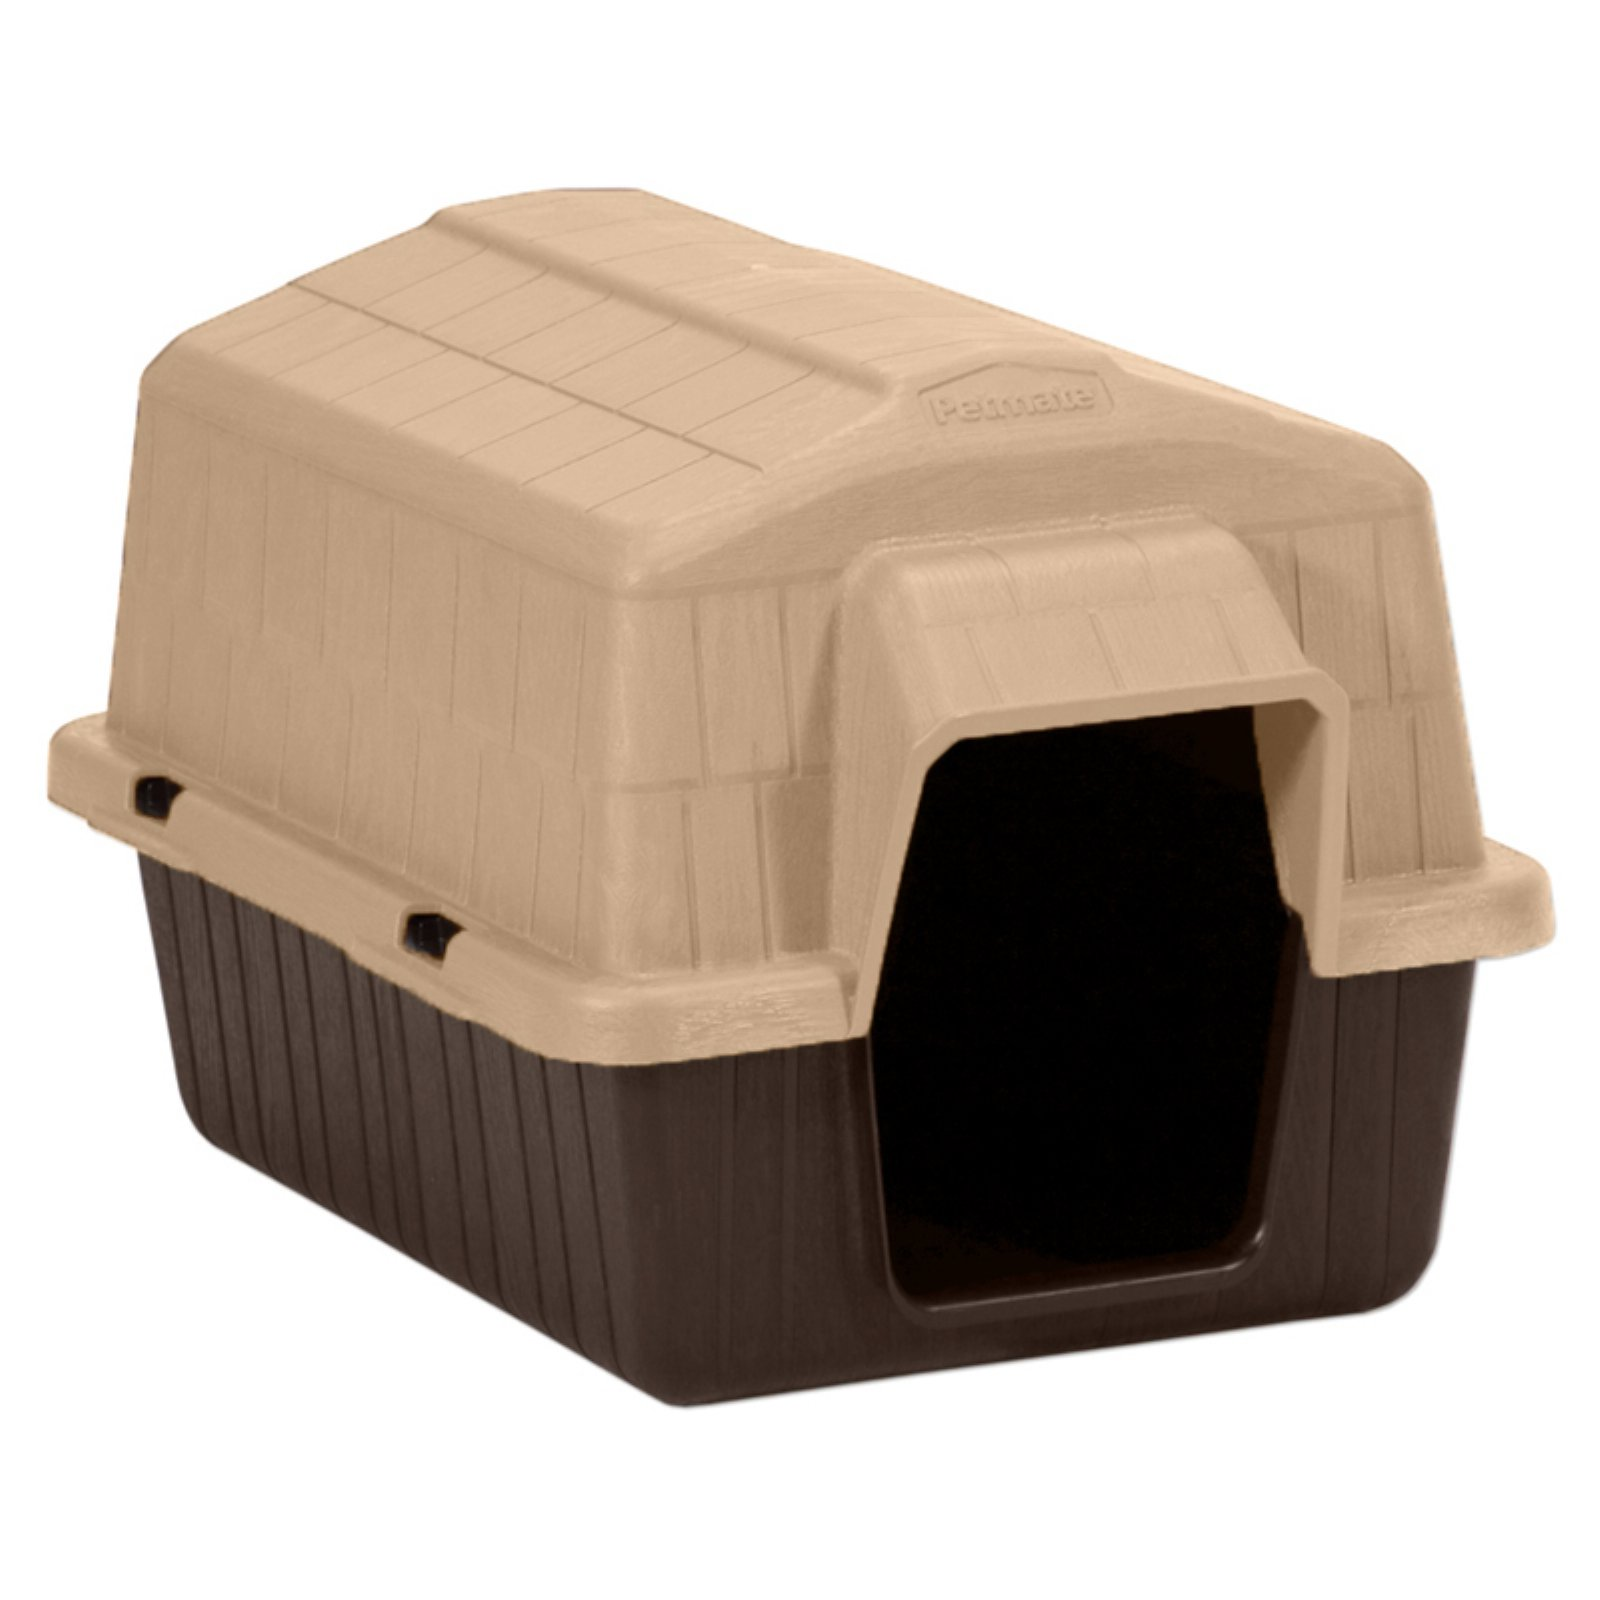 Aspen Pet Petbarn 3 Plastic Dog House, Up To 15 Lbs